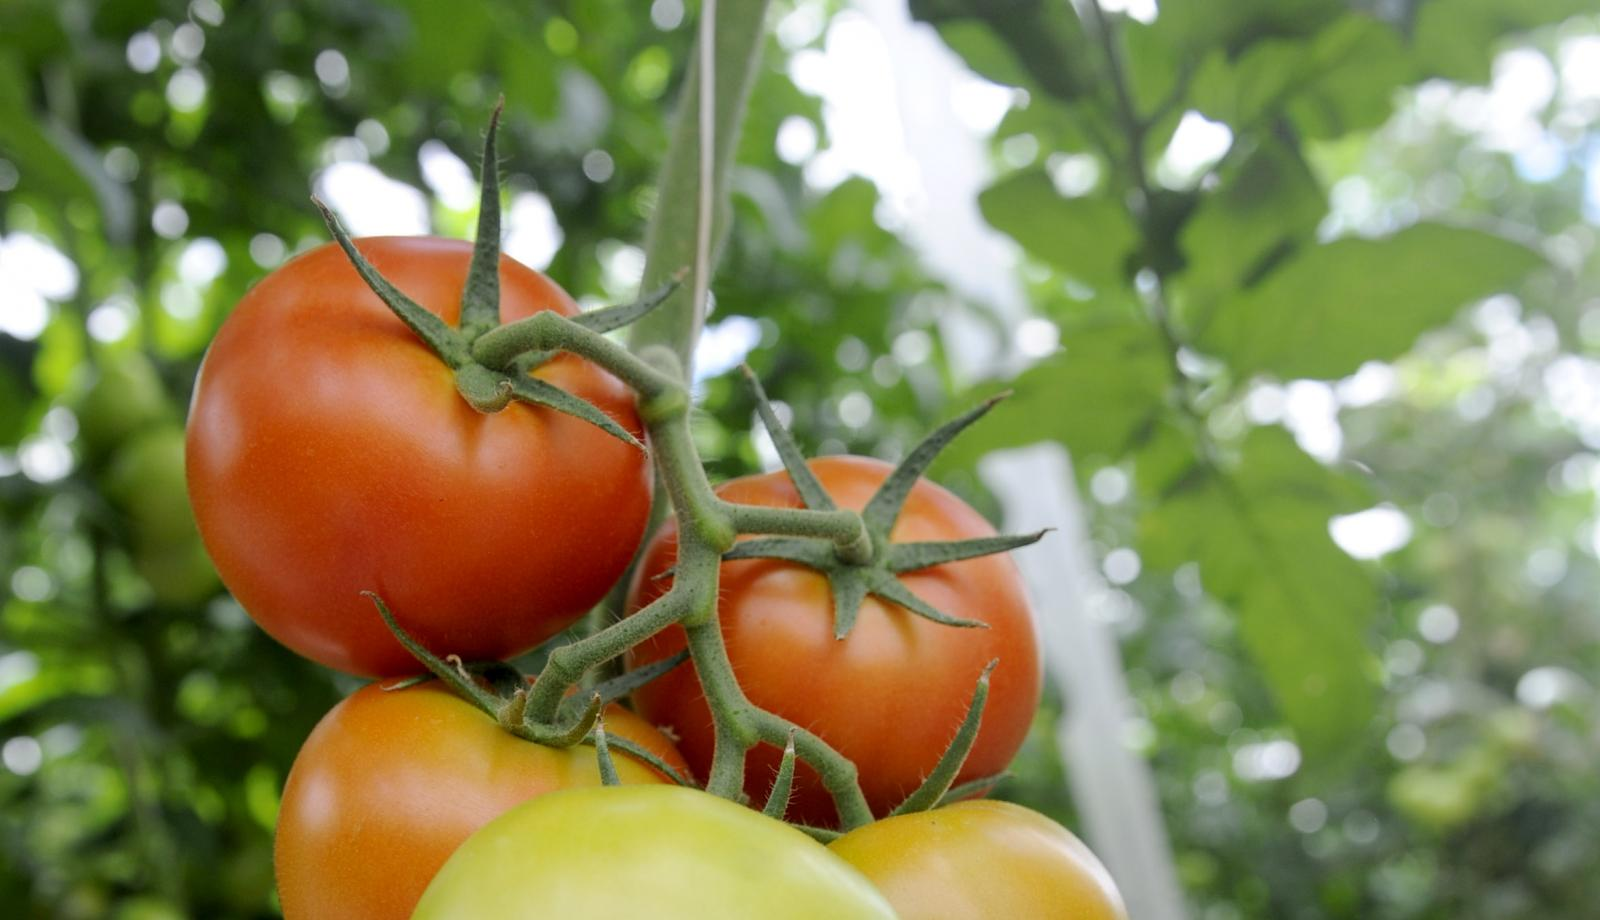 Report: Italian tomatoes unethical